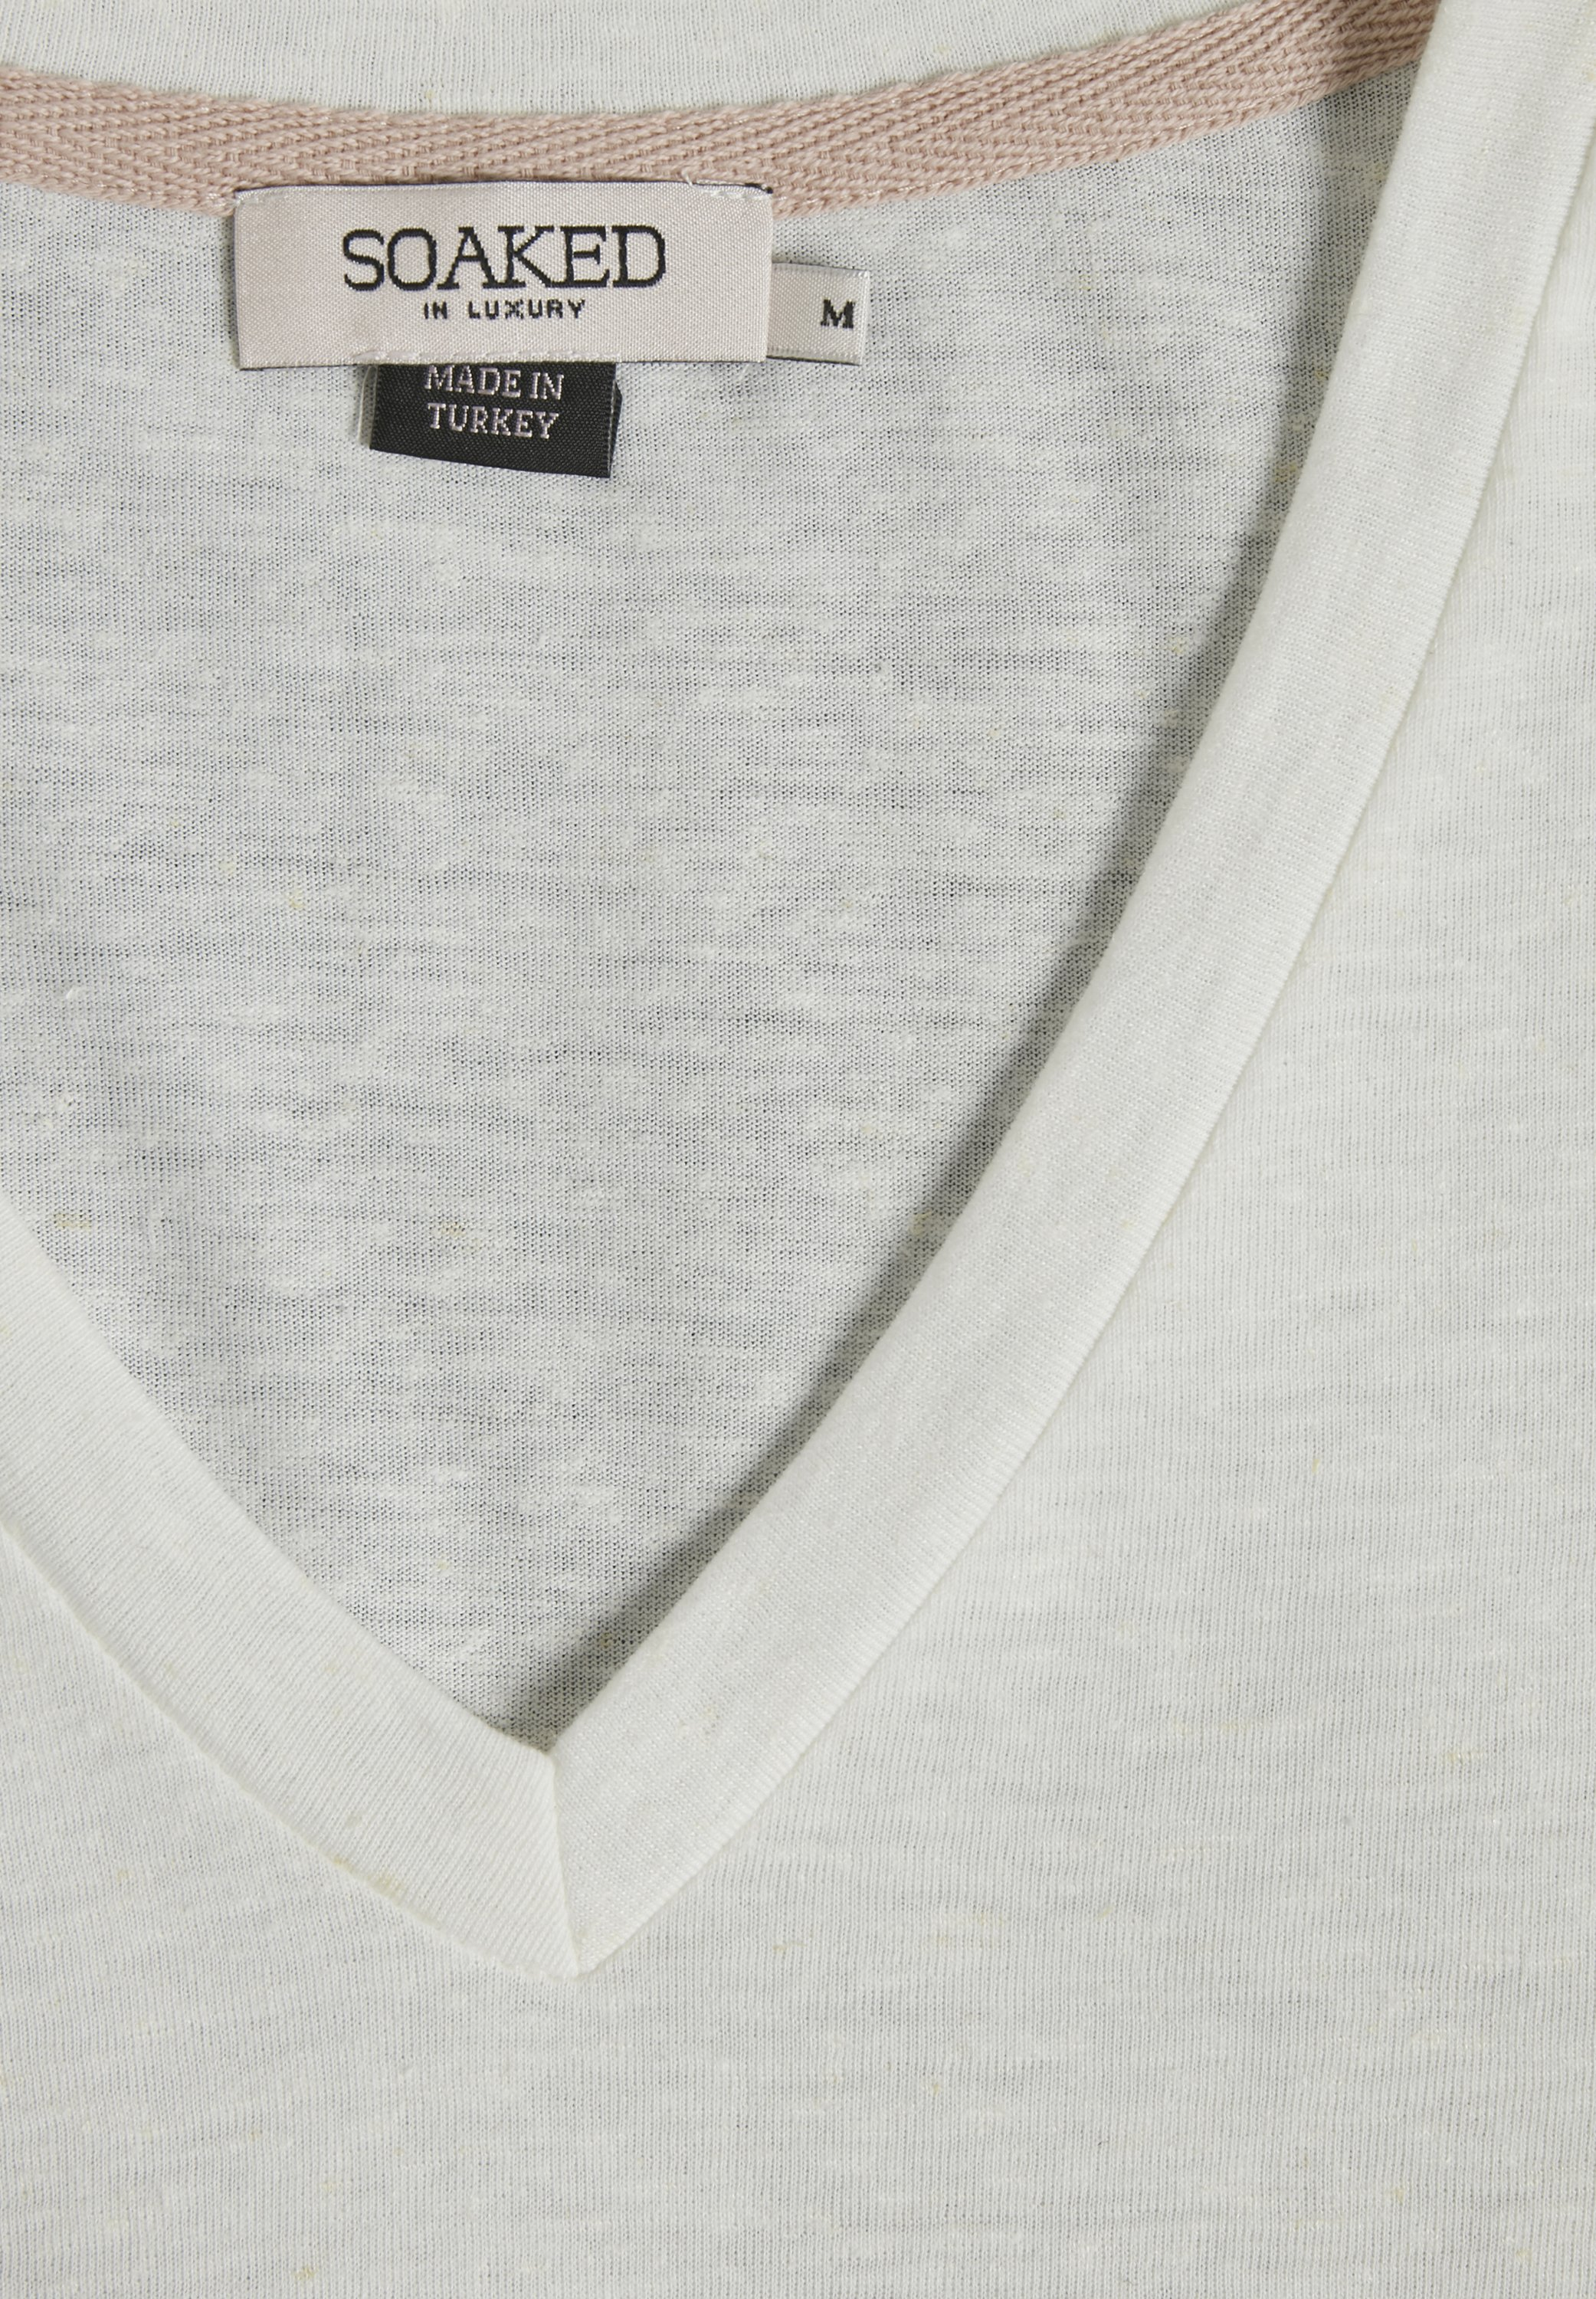 Soaked In Luxury T-shirts - White/creme/offwhite